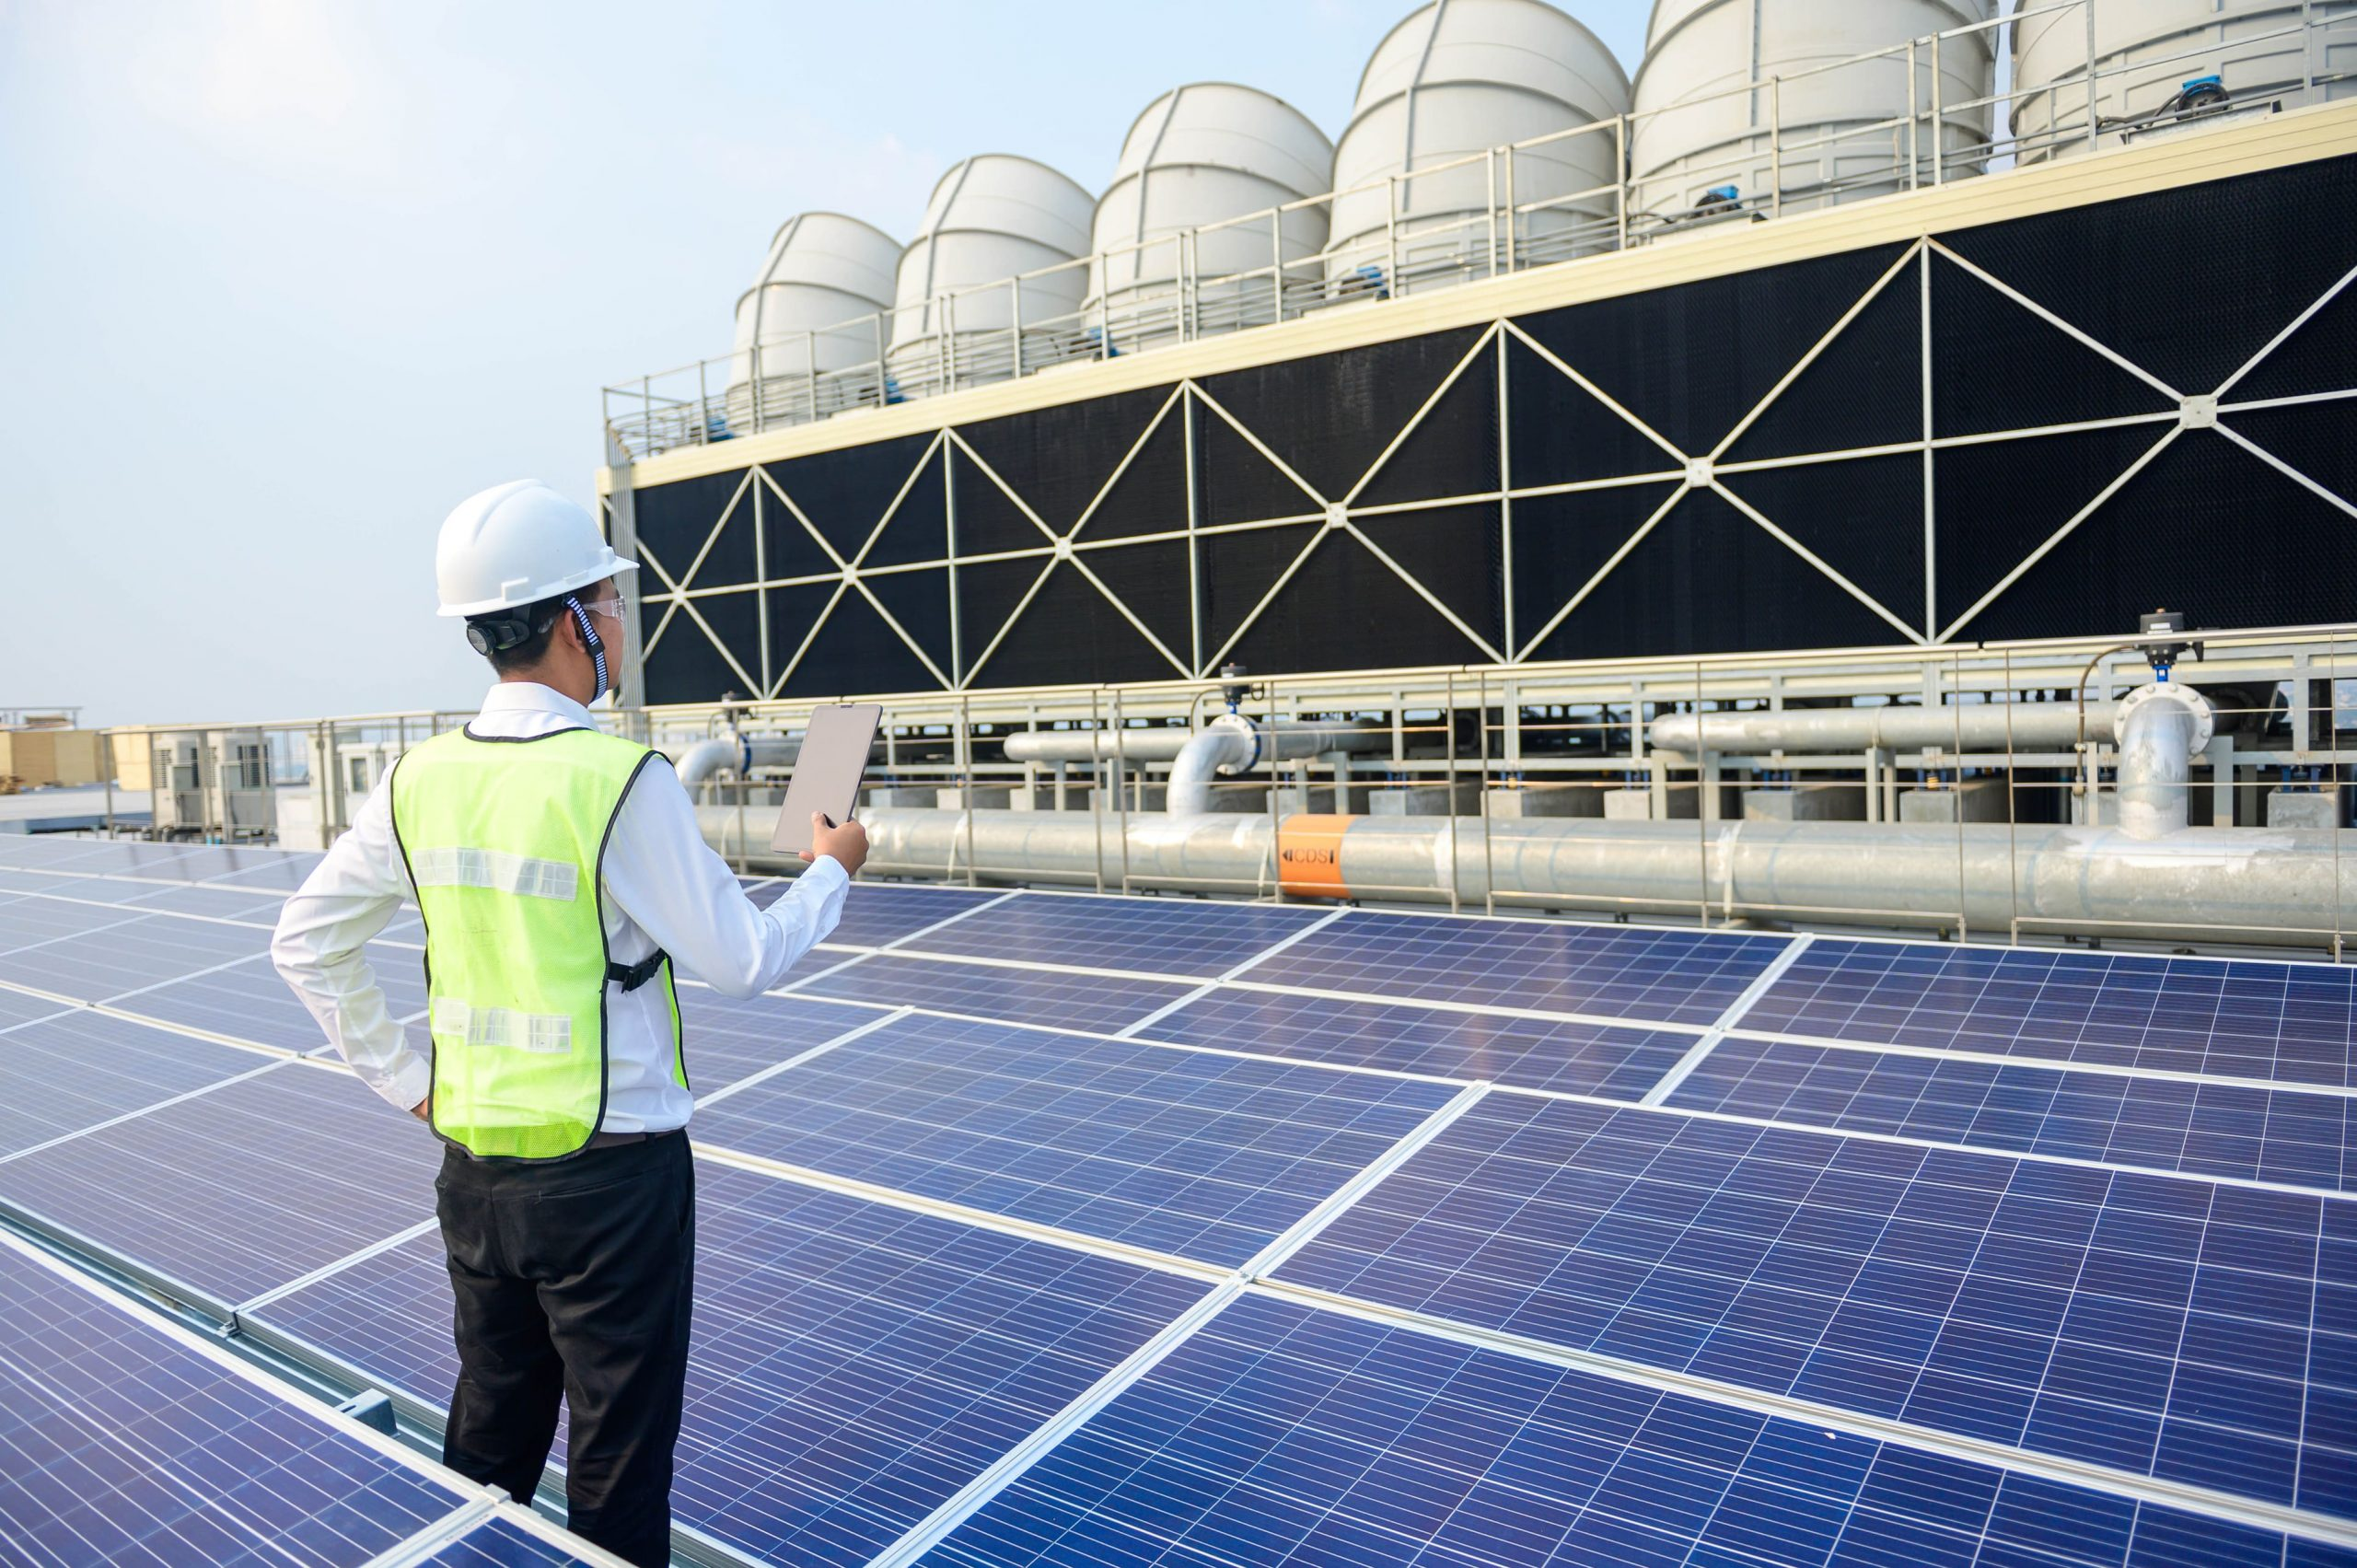 man standing between solar panels on a roof